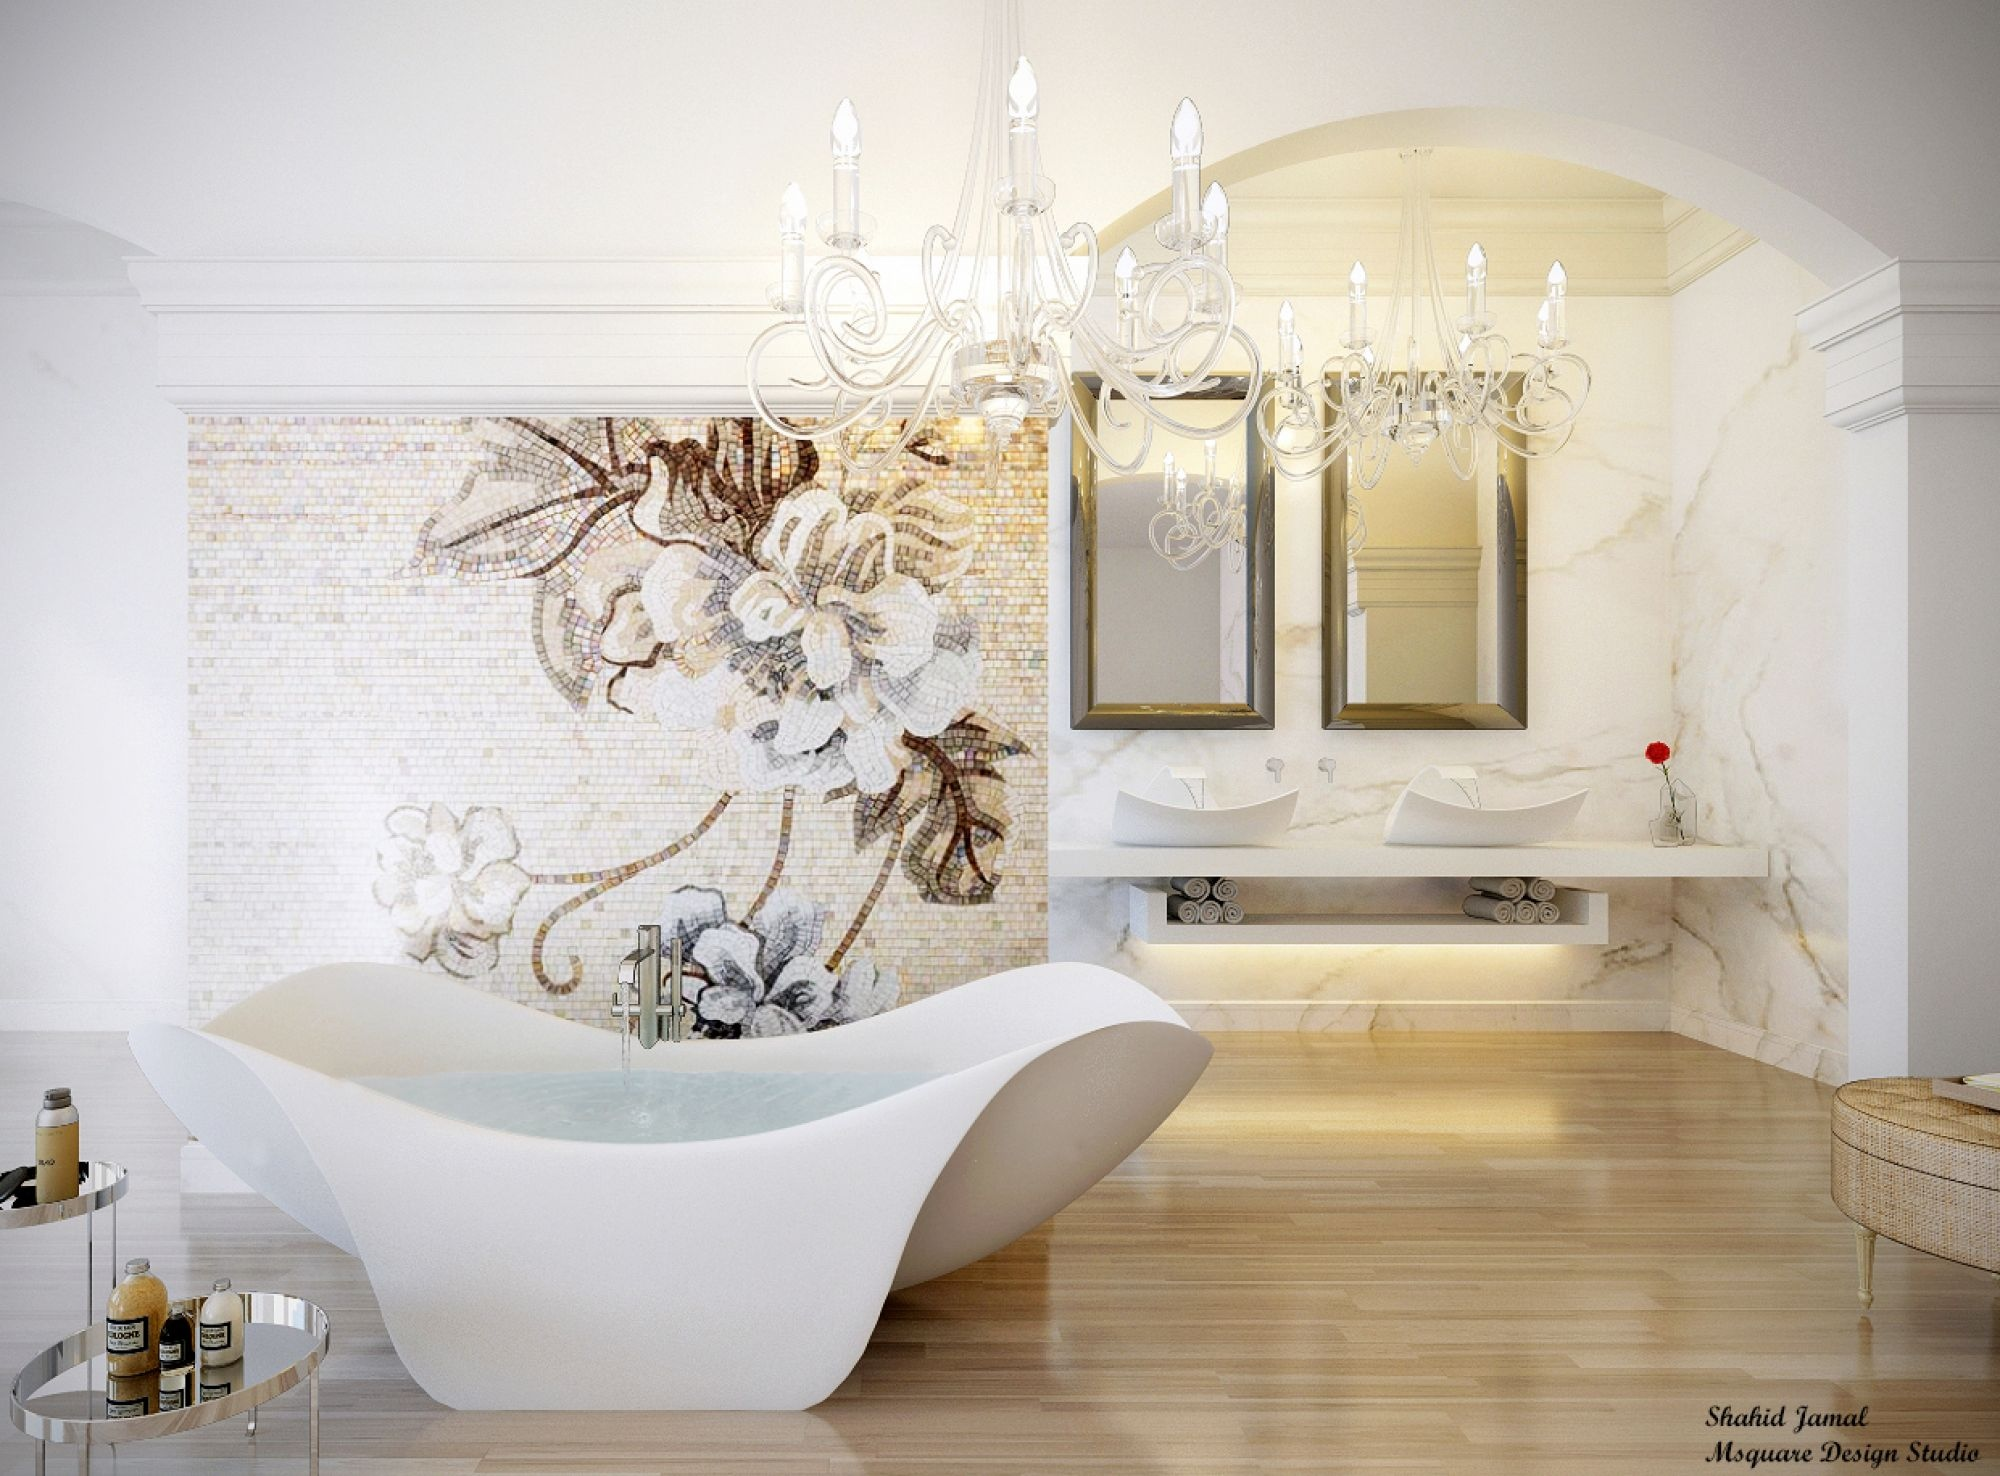 Ultra luxury bathroom inspiration for Master bath ideas 2016